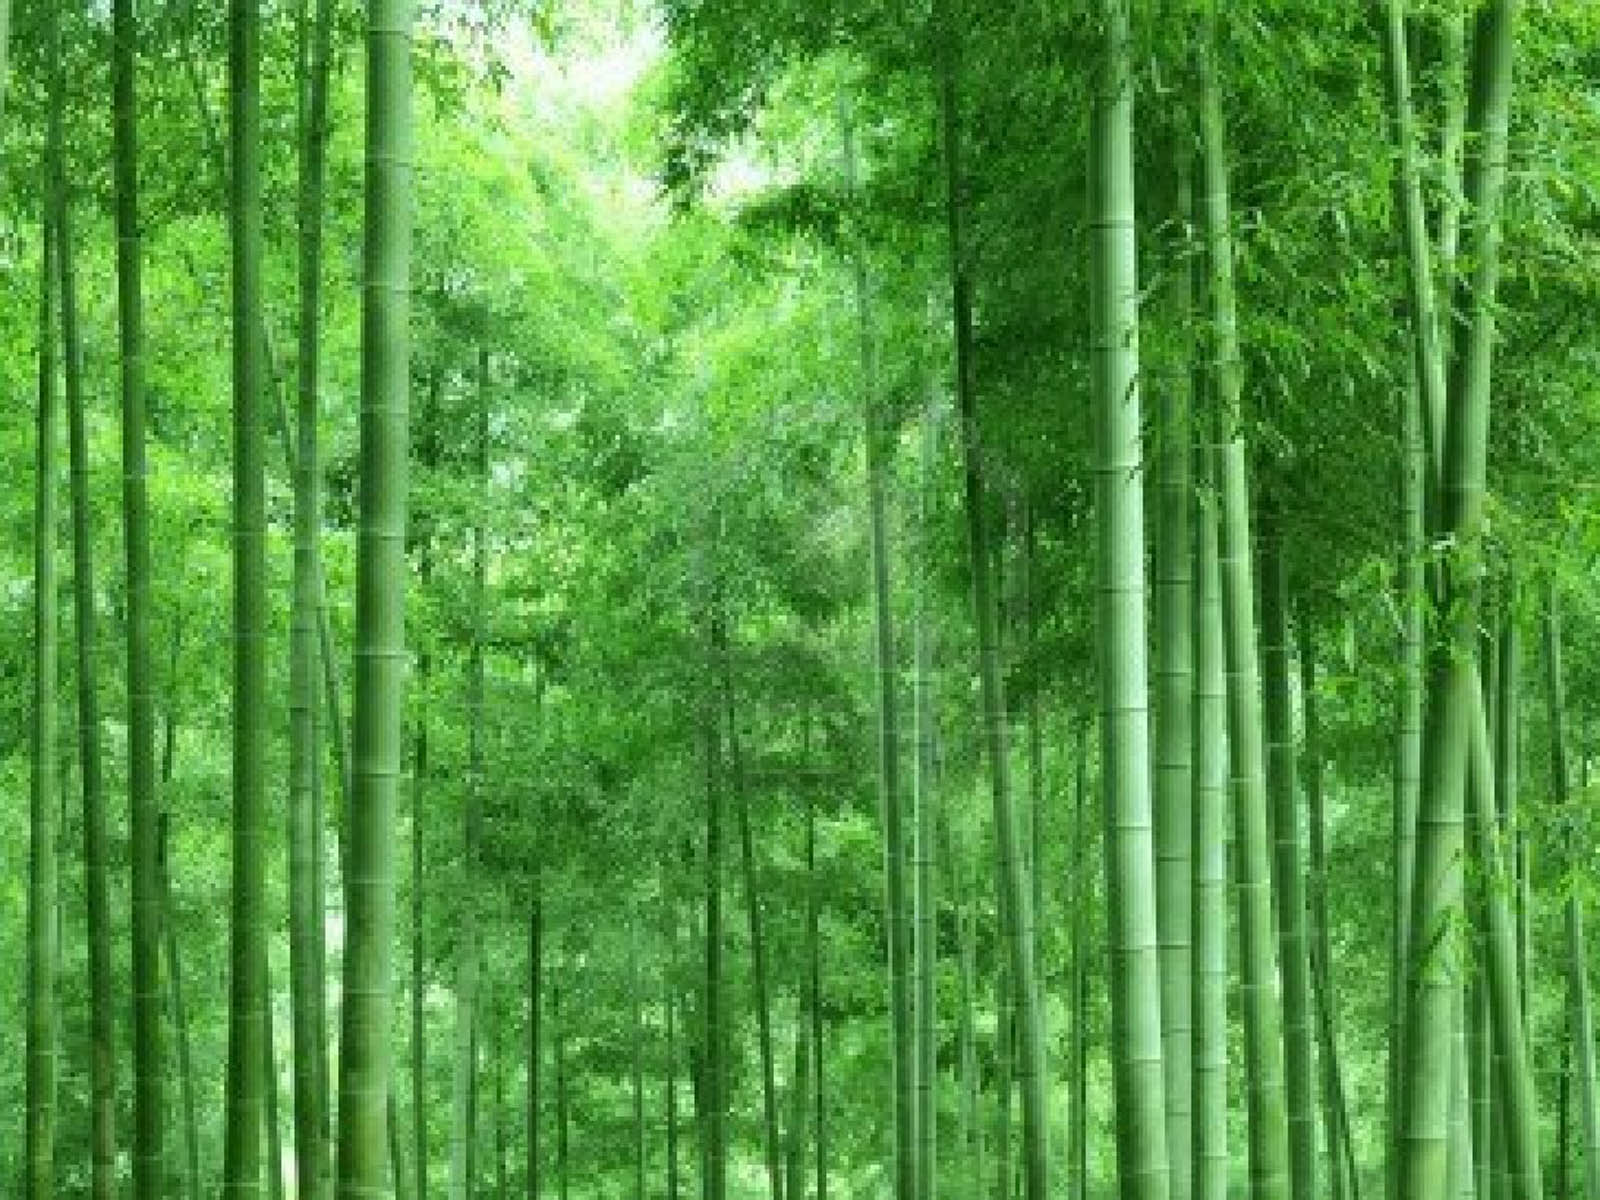 Wallpapers bamboo forest wallpapers for Bamboo wallpaper for walls